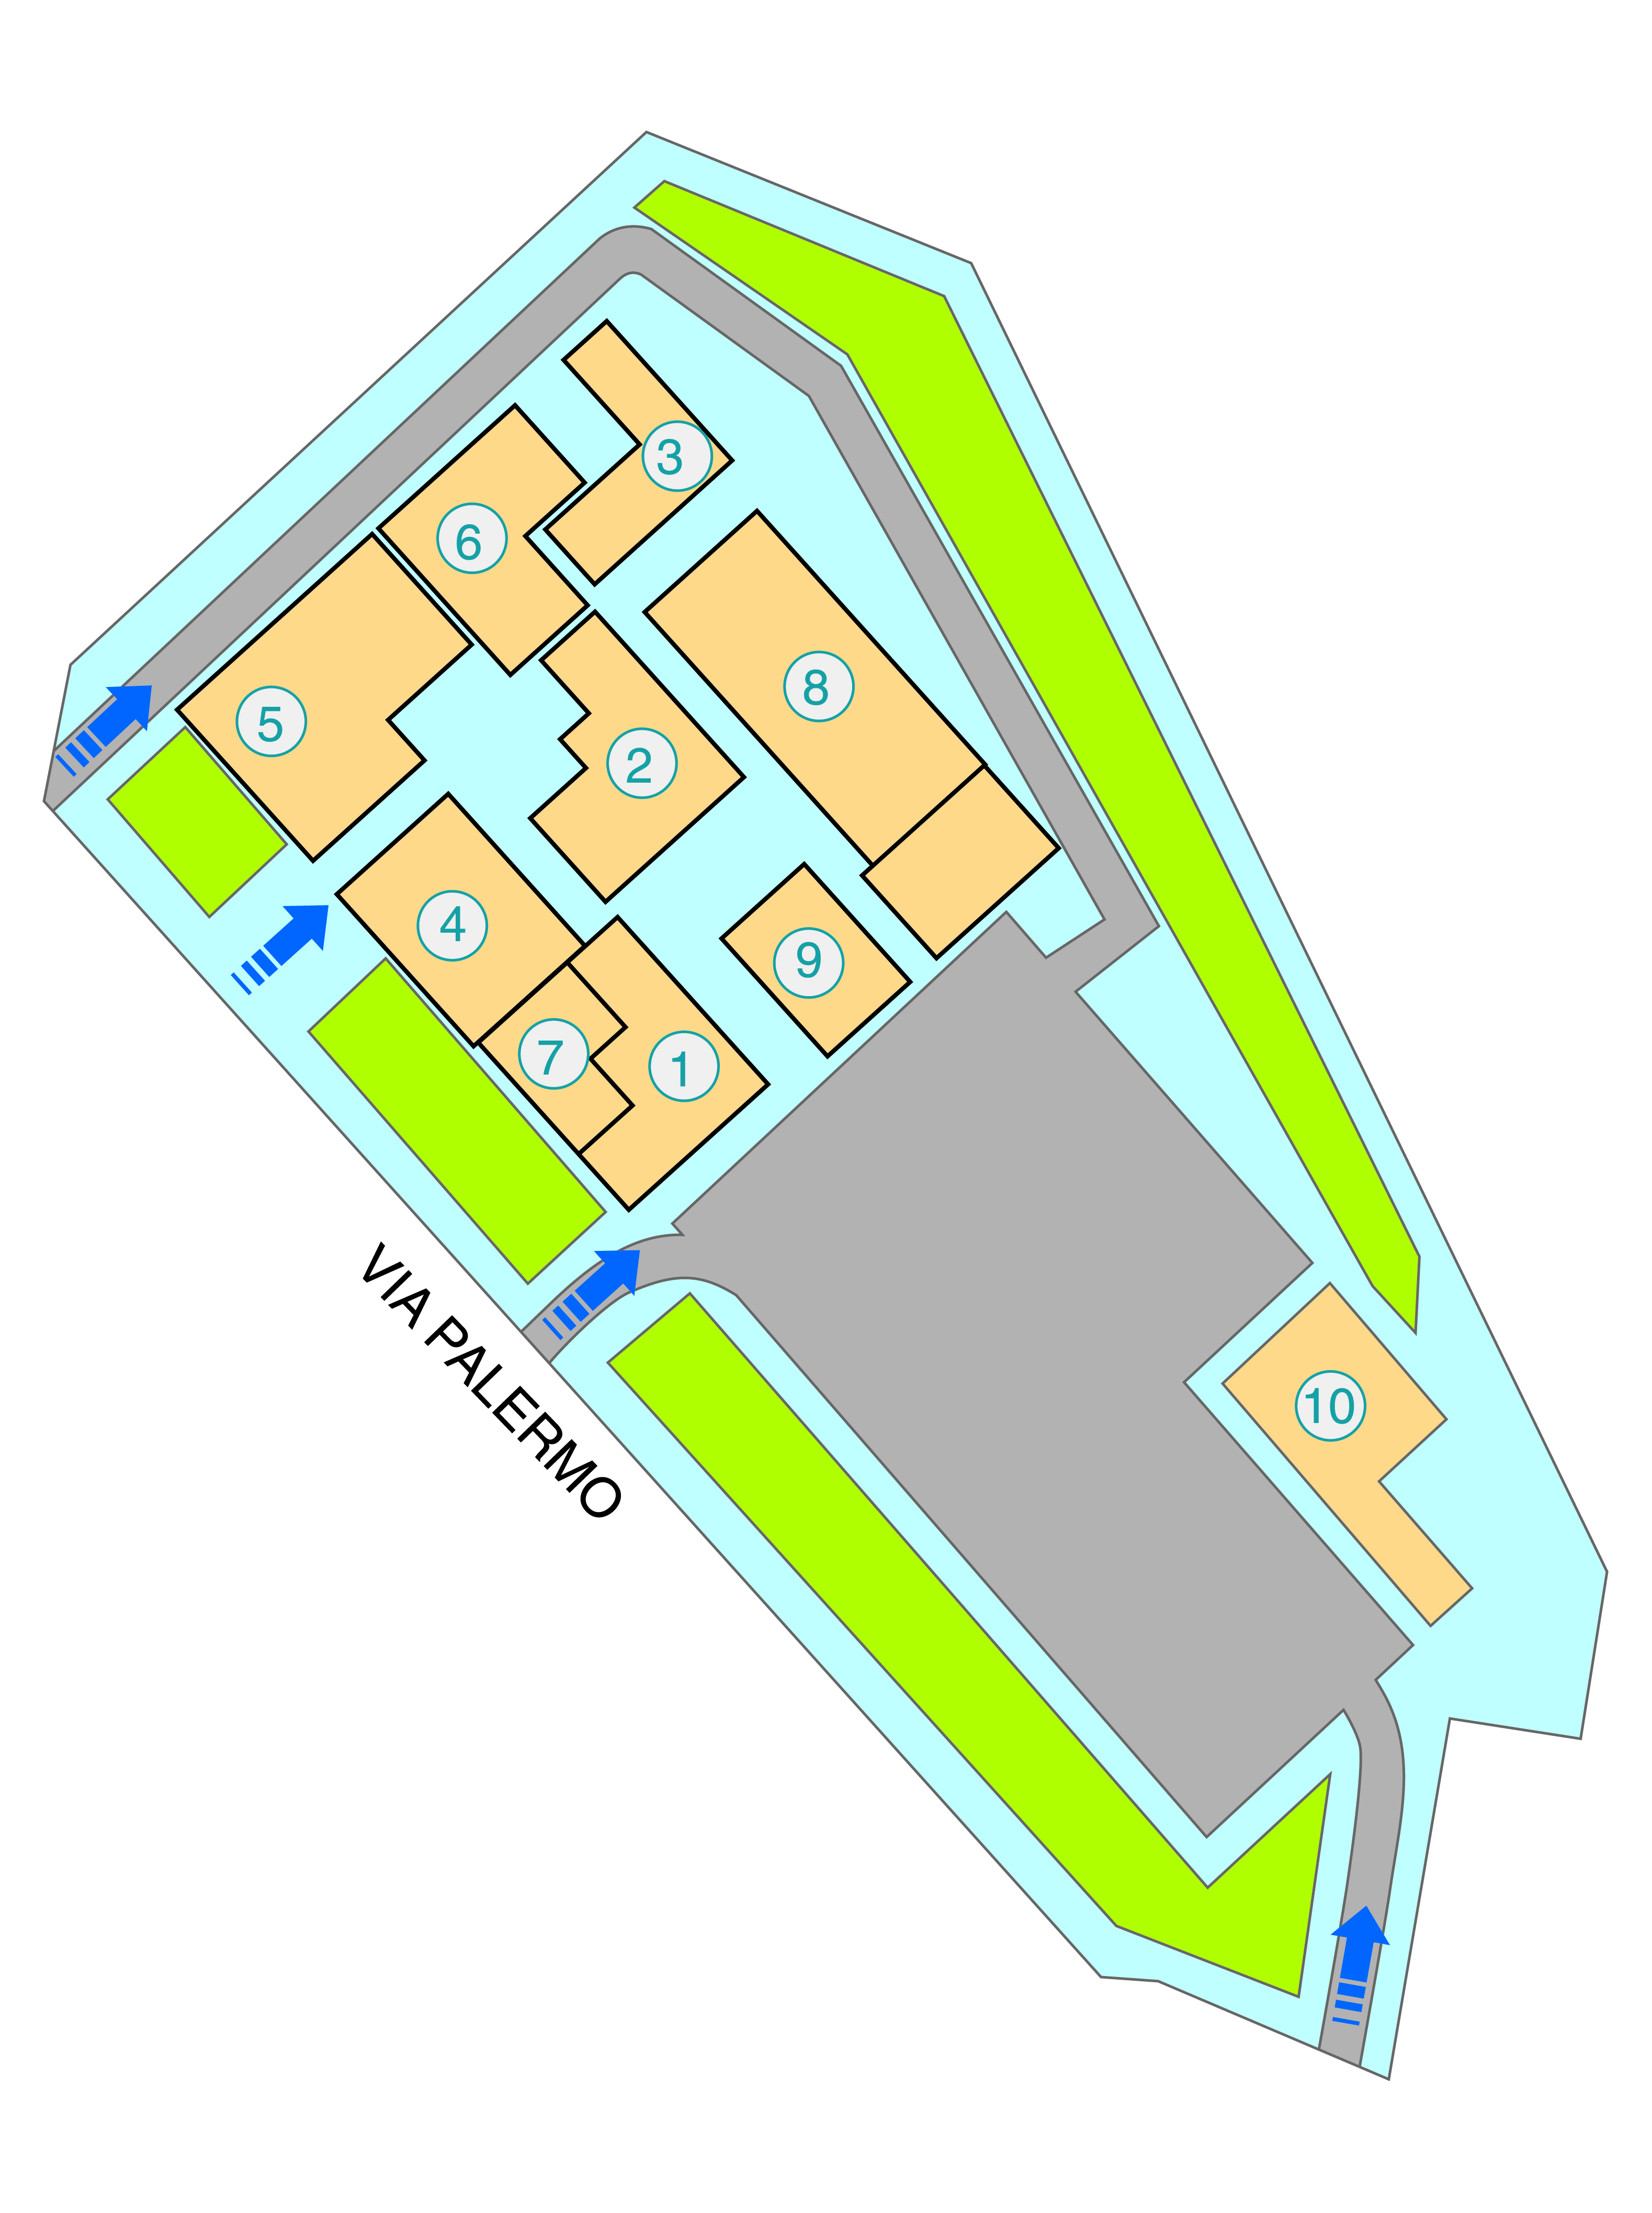 Mappa dell'Ospedale